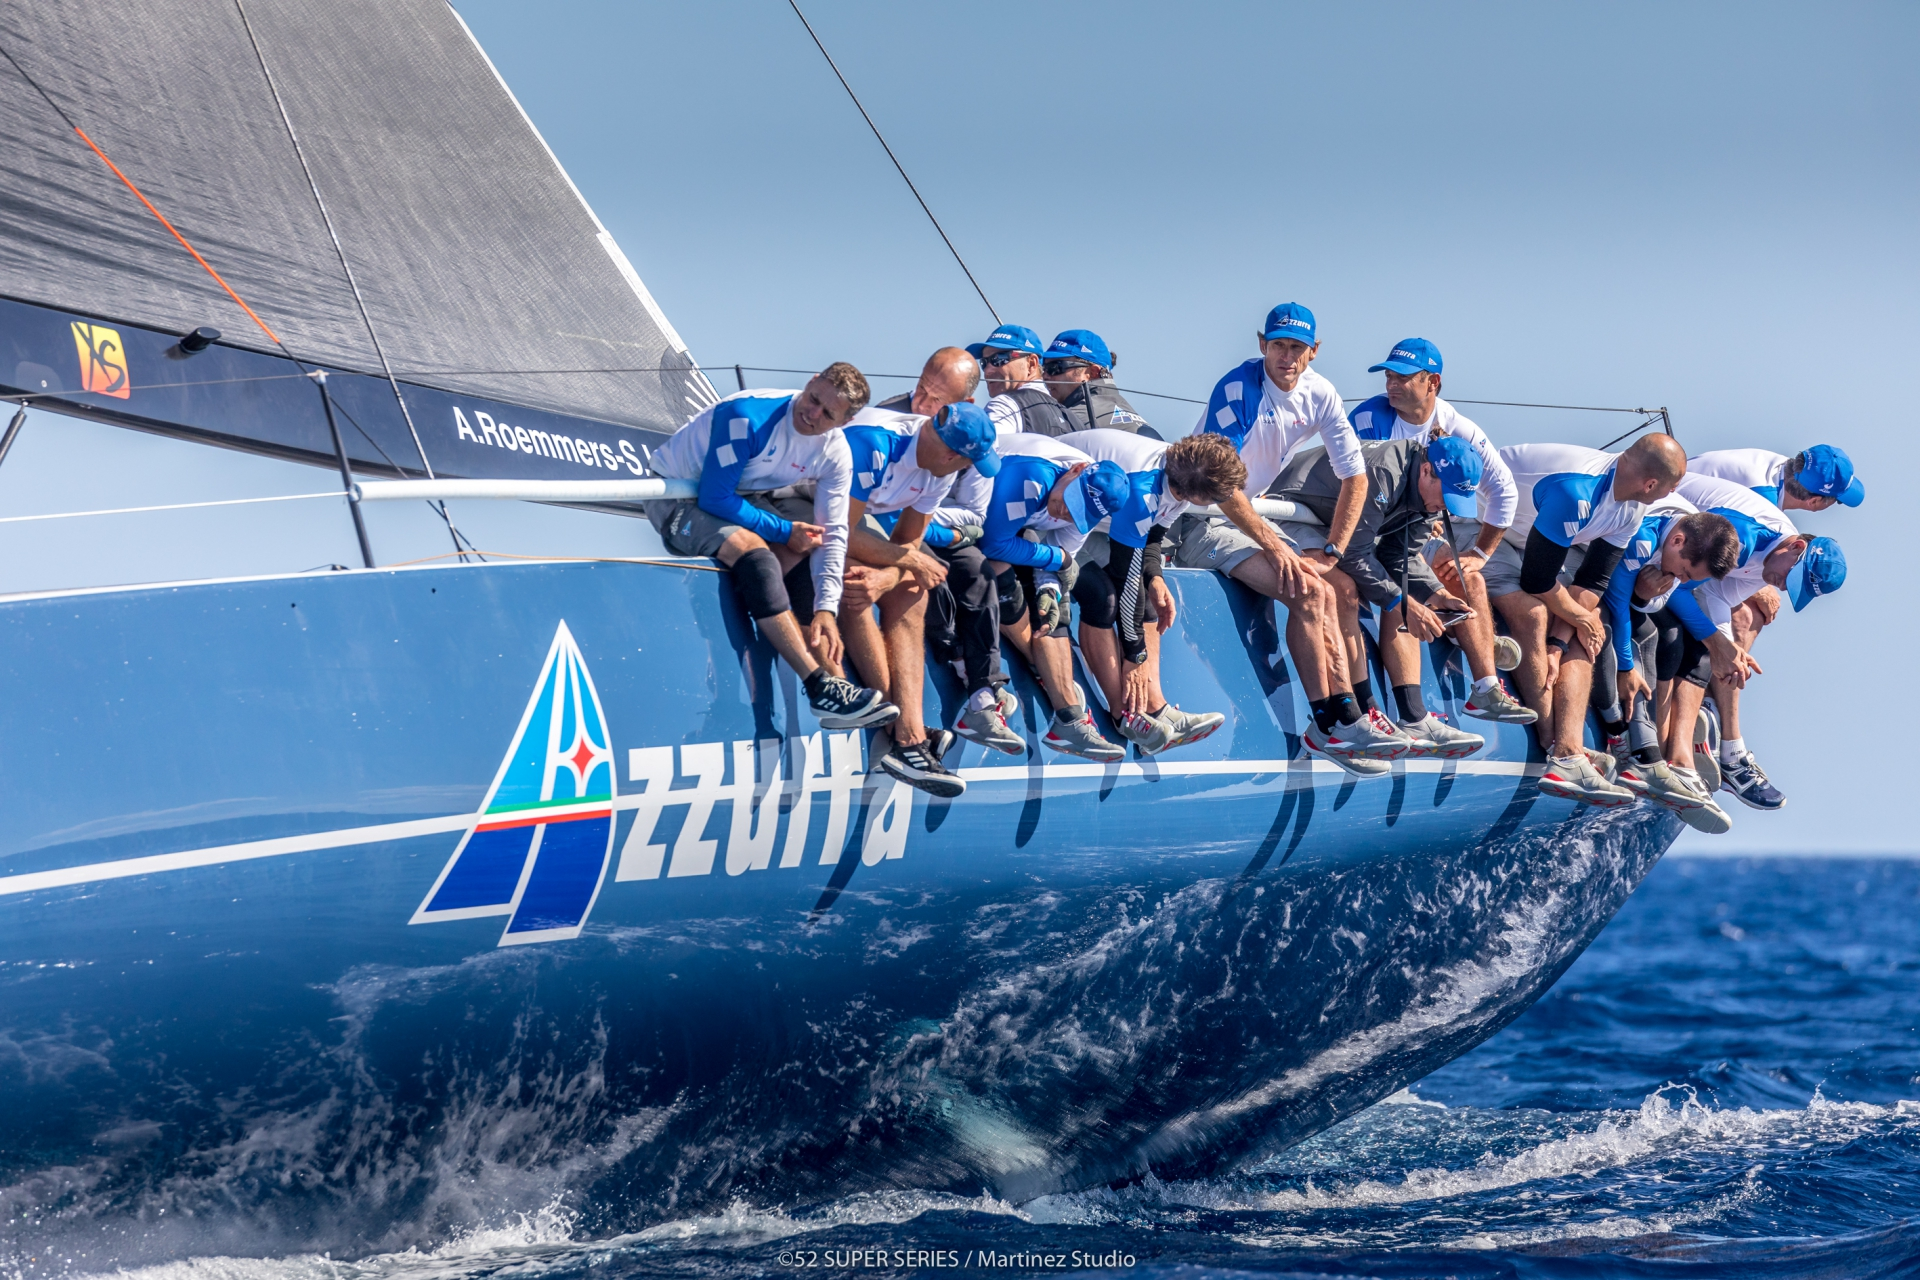 Chapter closes for the TP52 Azzurra after 10 highly successful seasons  - NEWS - Yacht Club Costa Smeralda